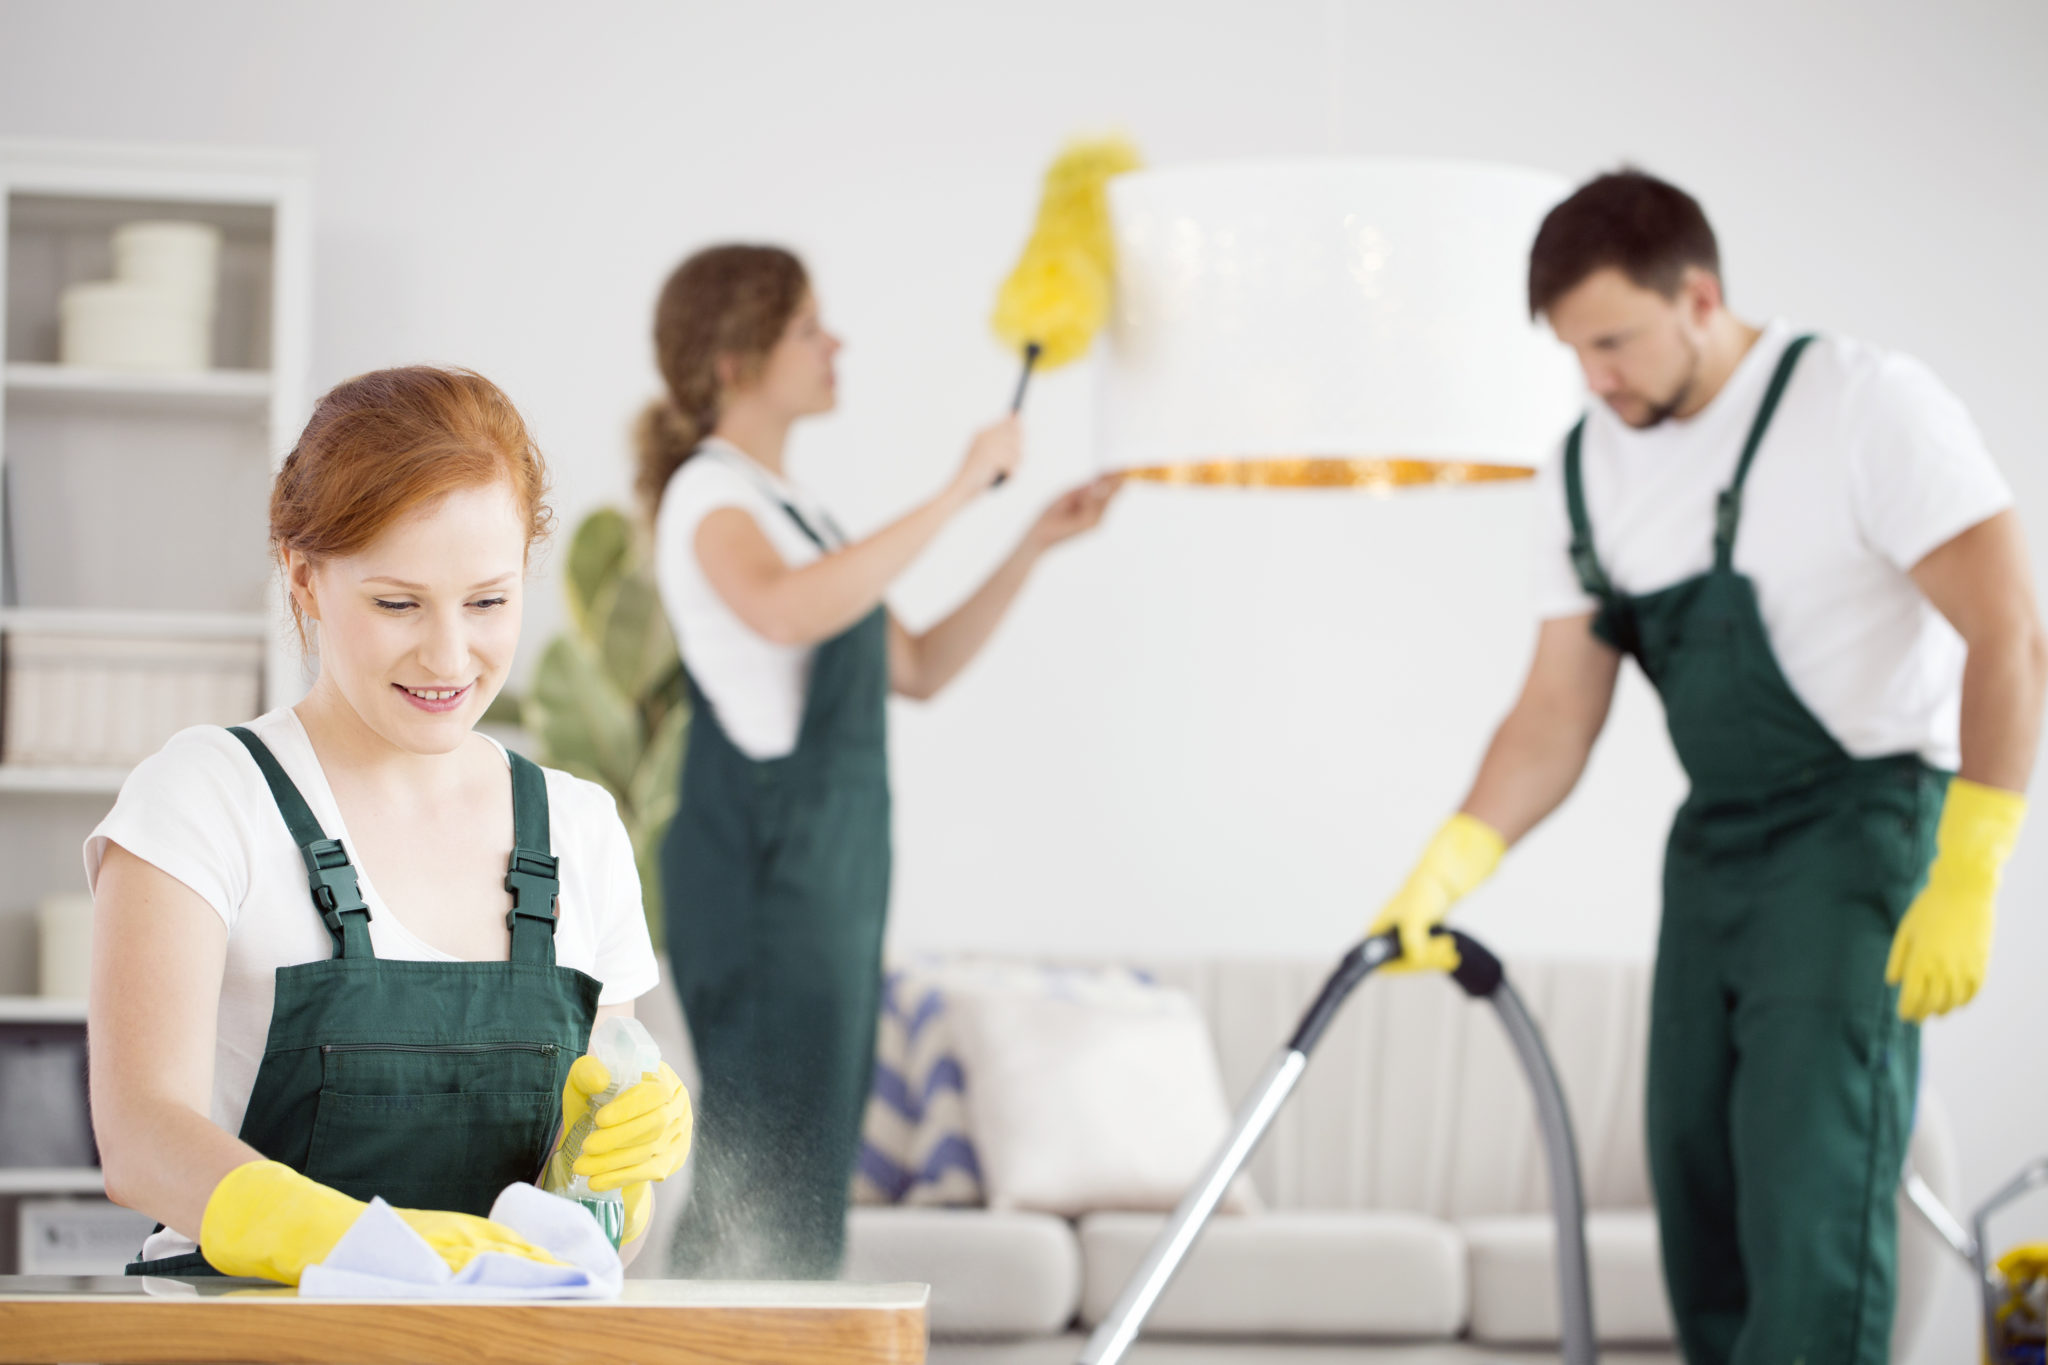 One woman dusting a table, second woman dusting a lamp and vacuuming man in green dungarees and yellow gloves